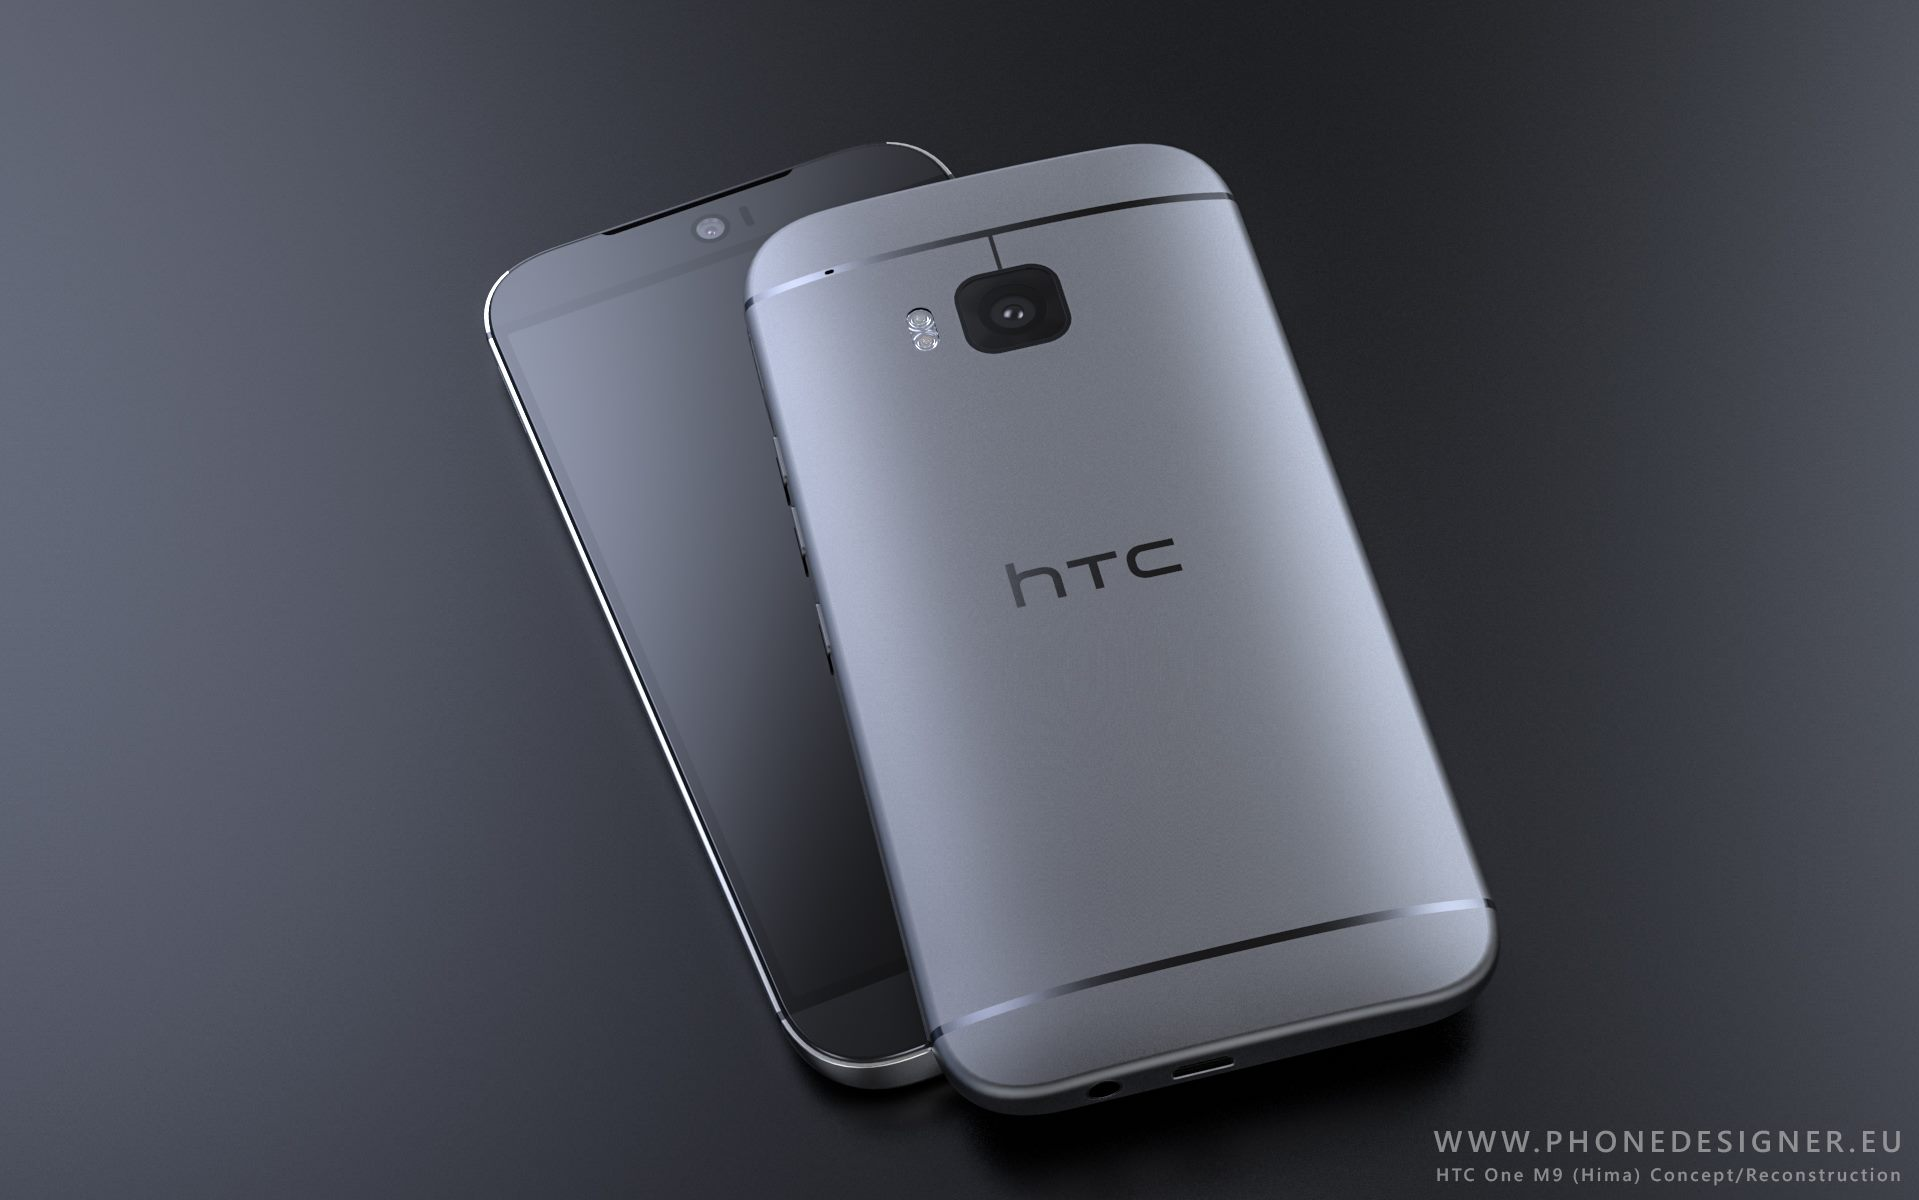 HTC One M9 Release: What You Should Know